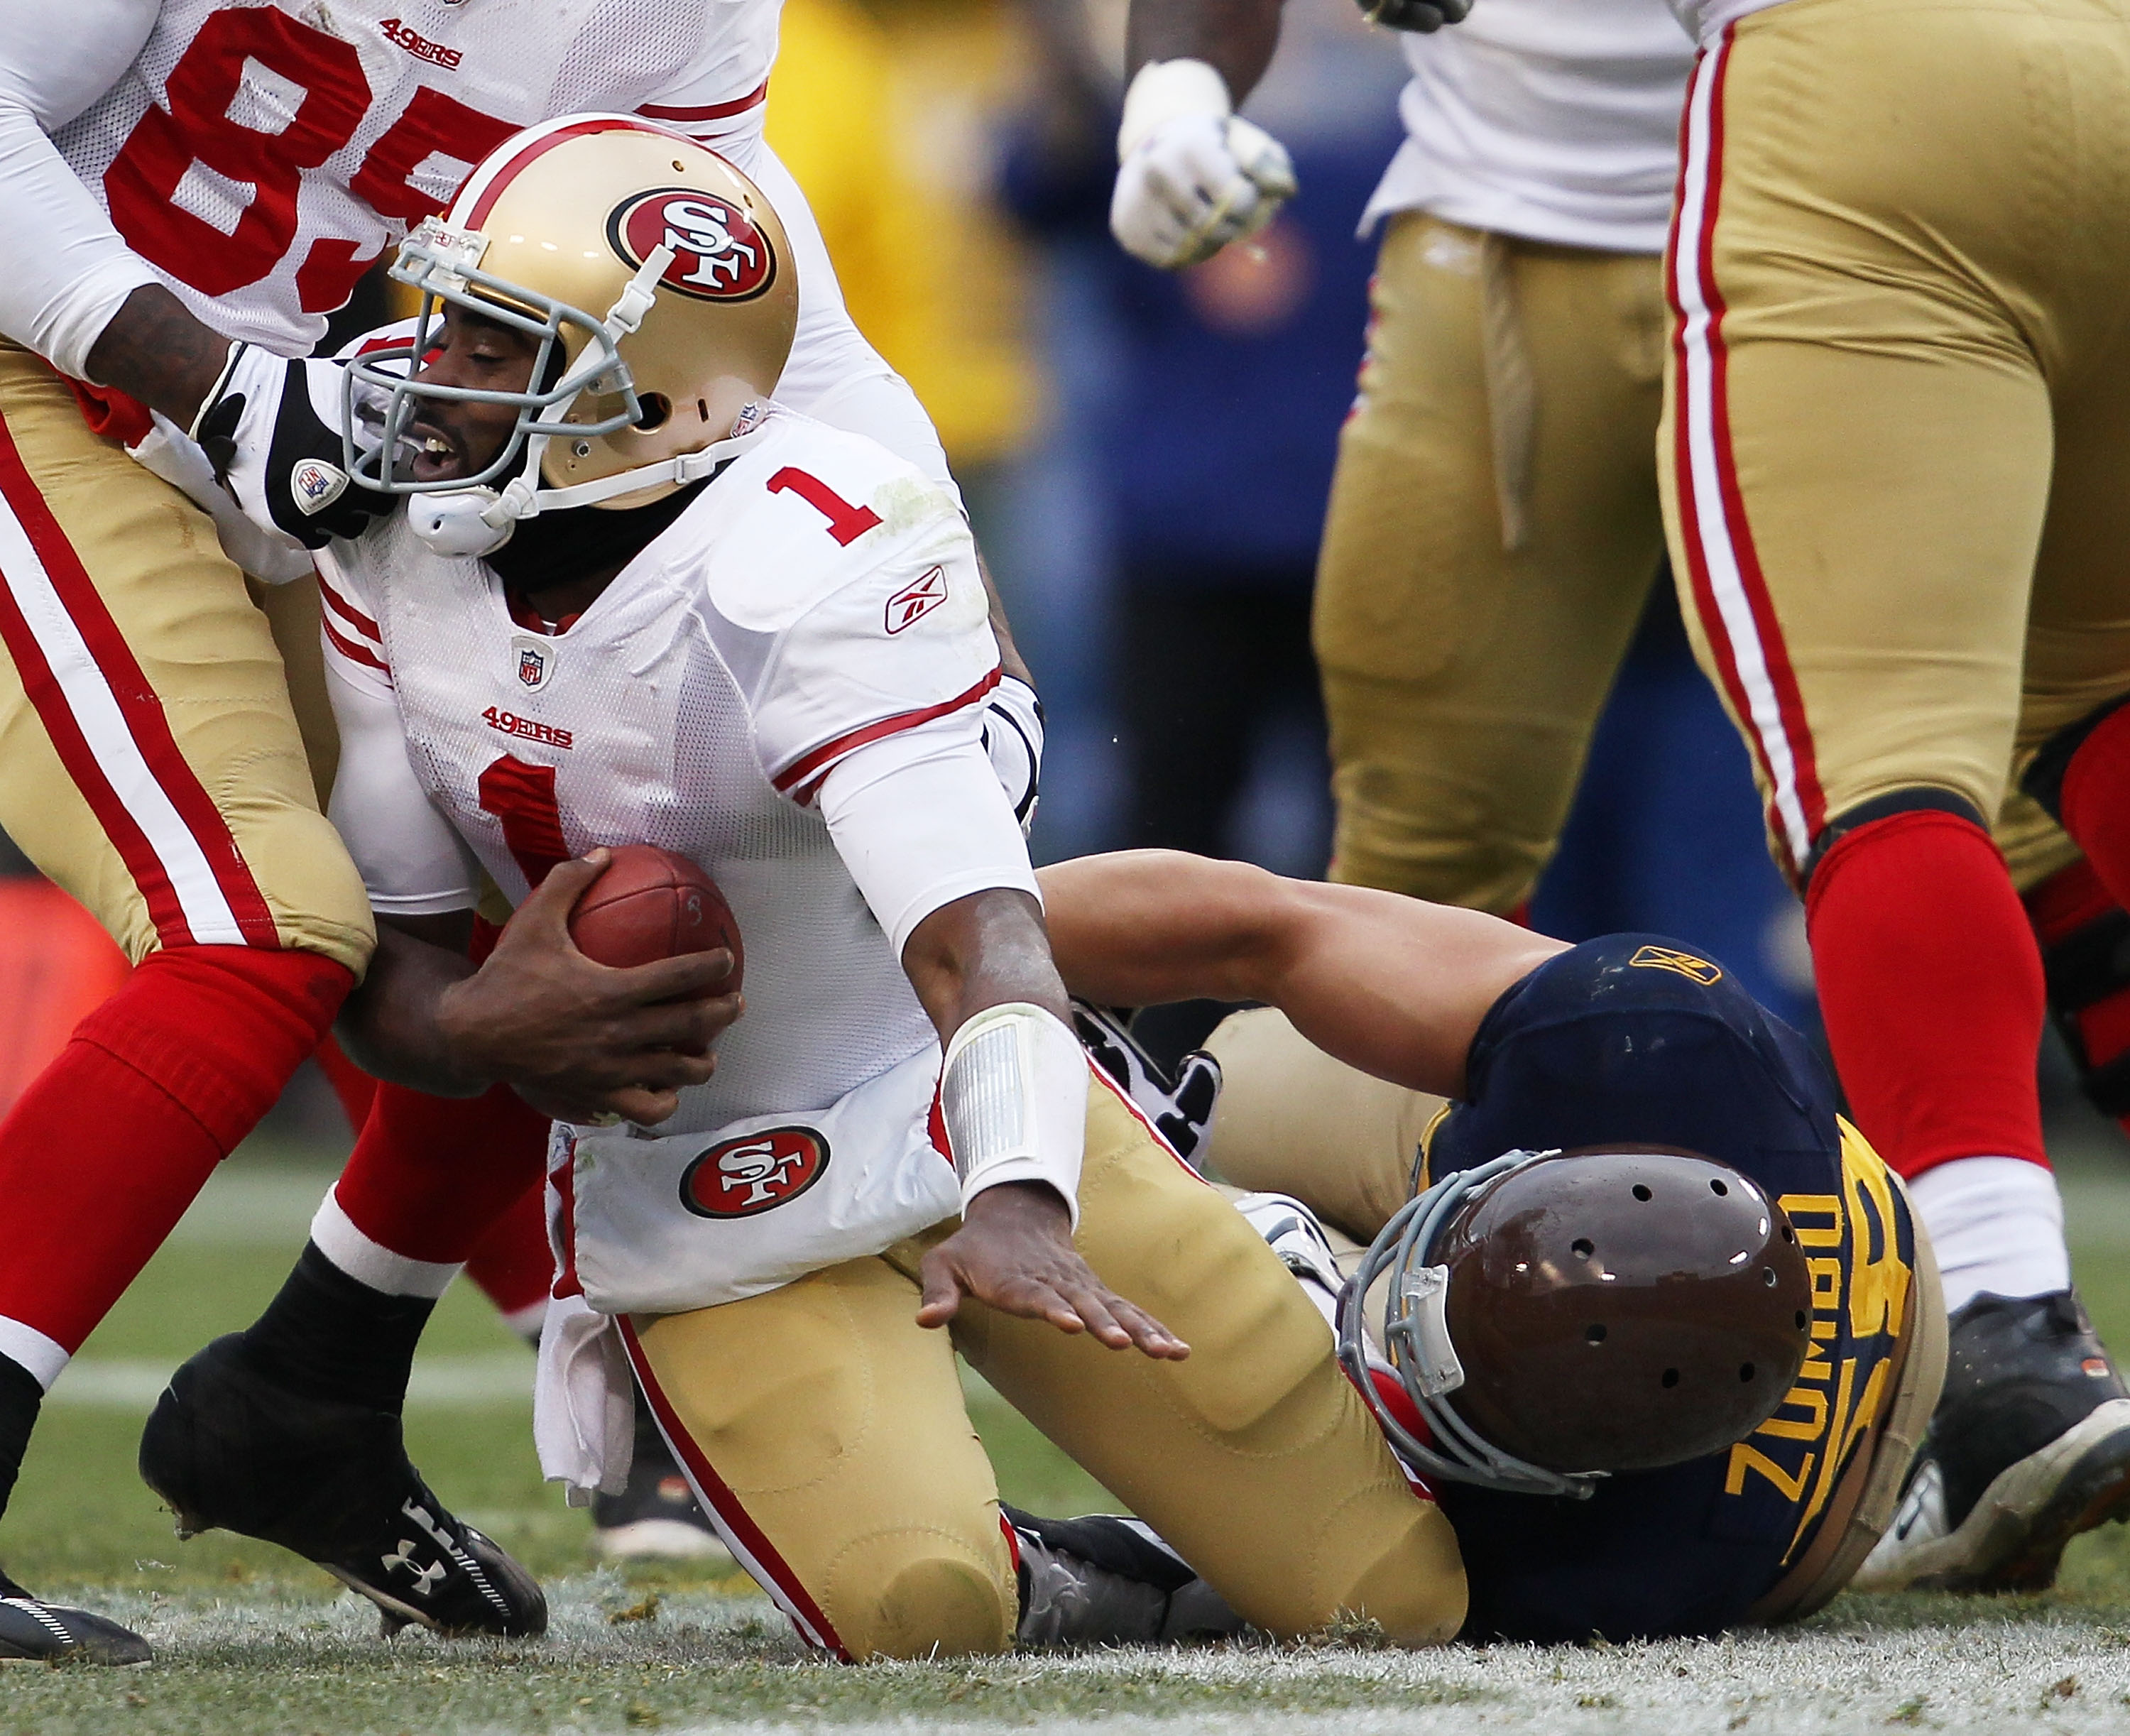 GREEN BAY, WI - DECEMBER 05: Frank Zombo #58 of the Green Bay Packers sacks Troy Smith #1 of the San Francisco 49ers at Lambeau Field on December 5, 2010 in Green Bay, Wisconsin. The Packers defeated the 49ers 34-16. (Photo by Jonathan Daniel/Getty Images